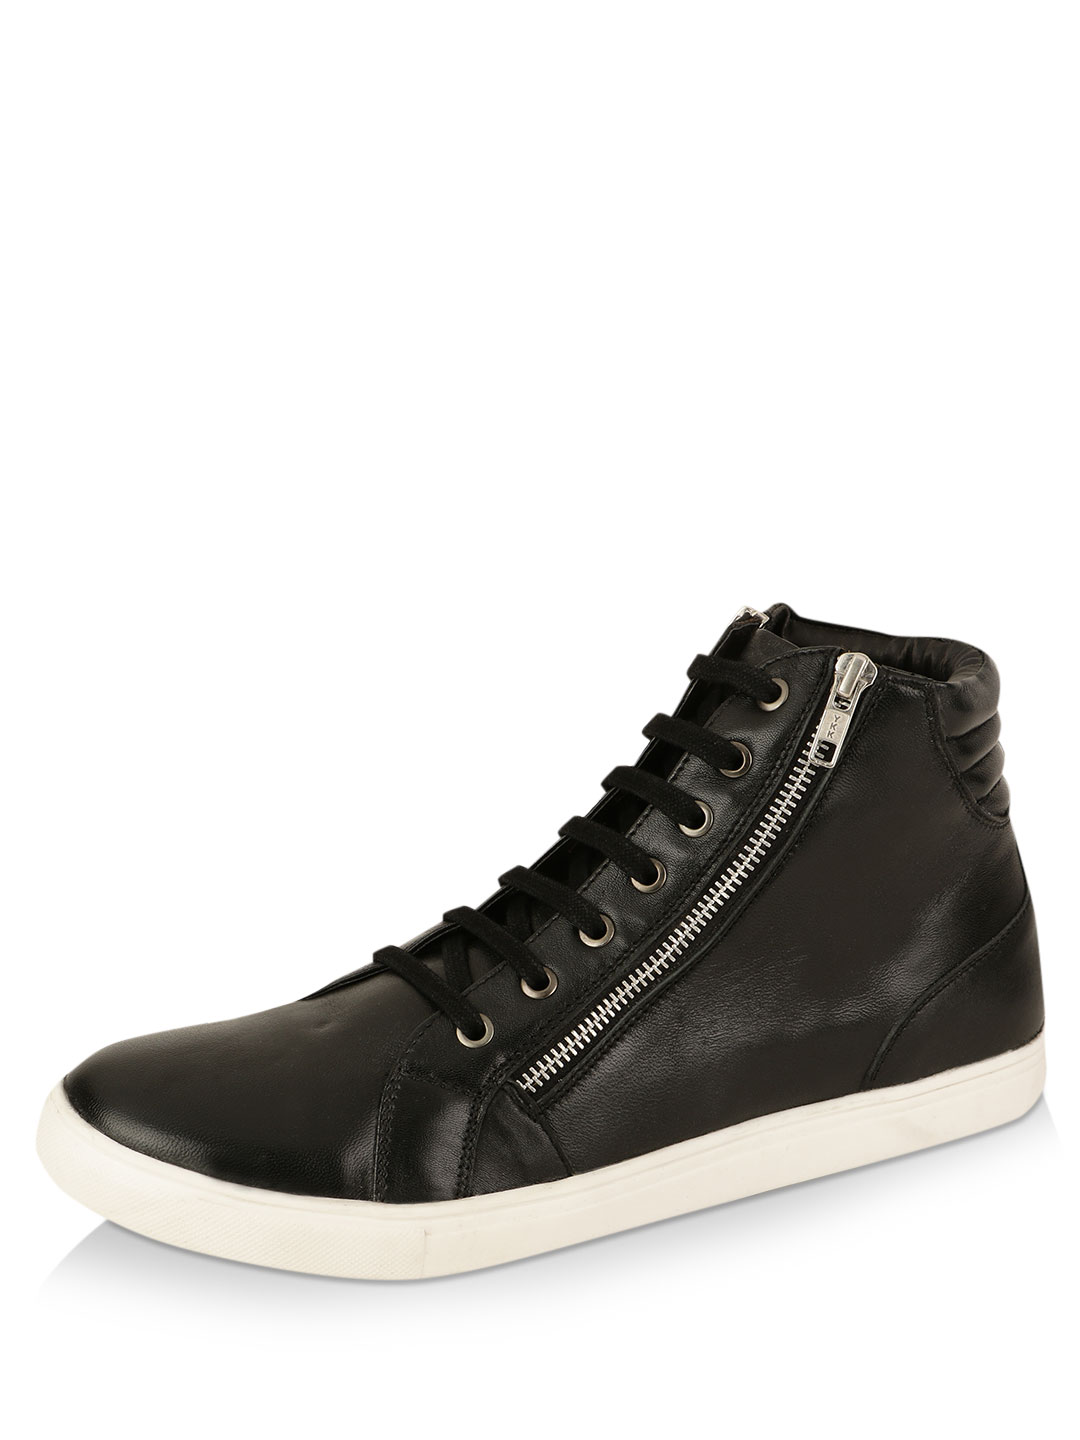 Griffin Black Leather Hi Top Sneakers with Side Zip Detailing 1